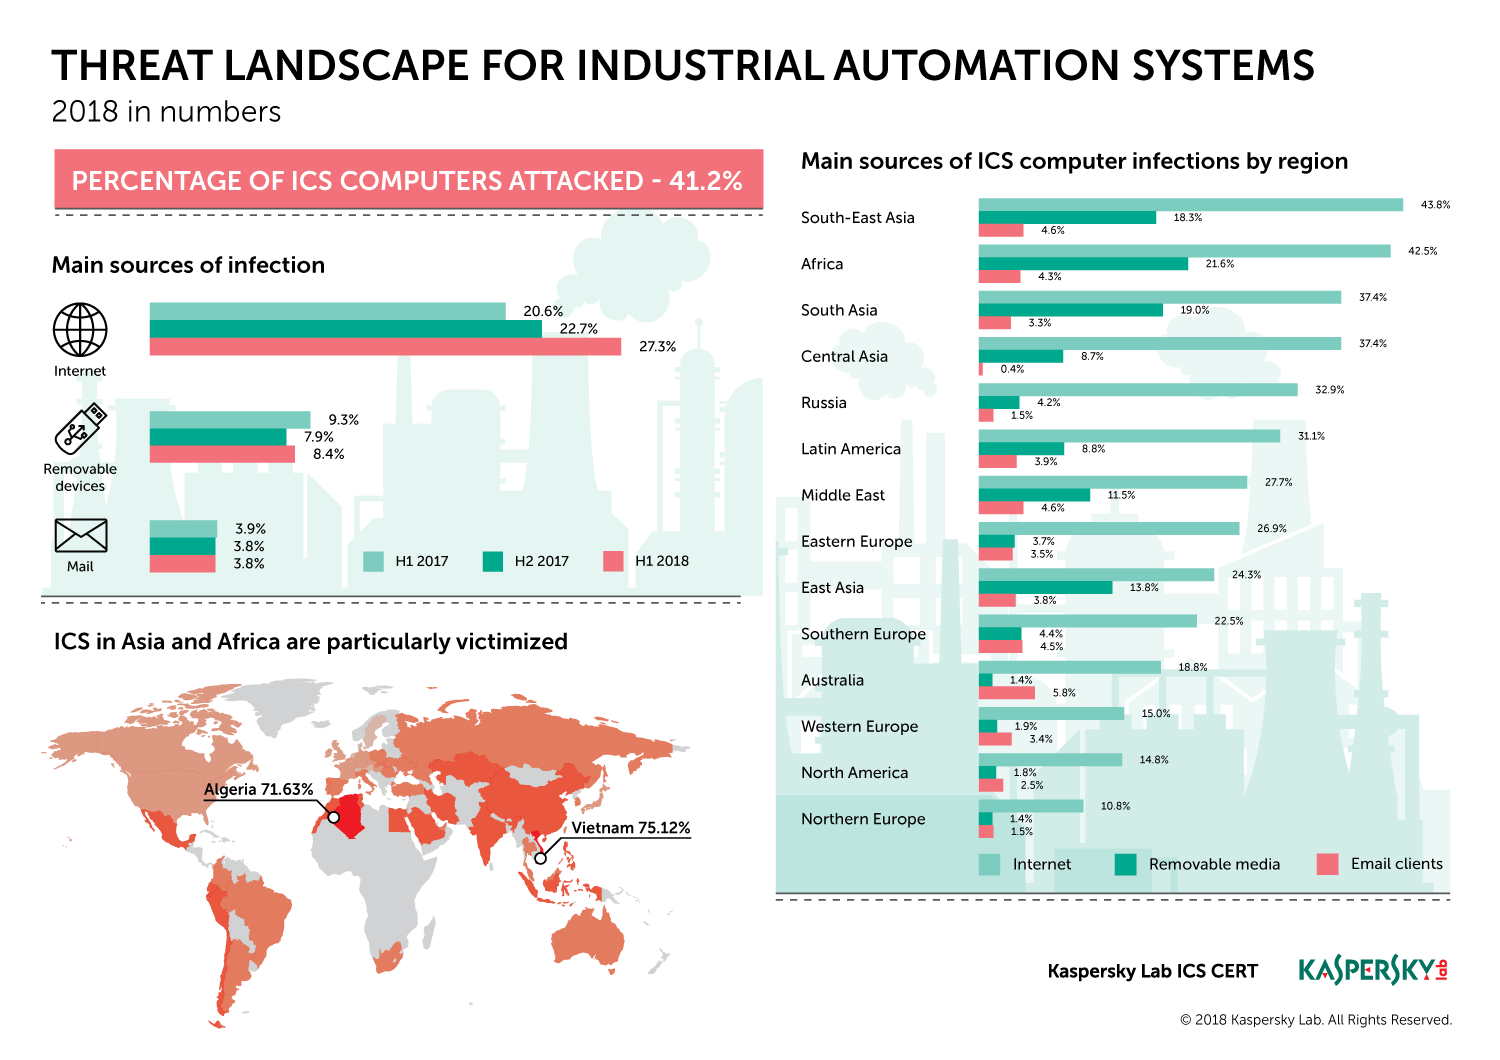 Threat landscape for industrial automation systems